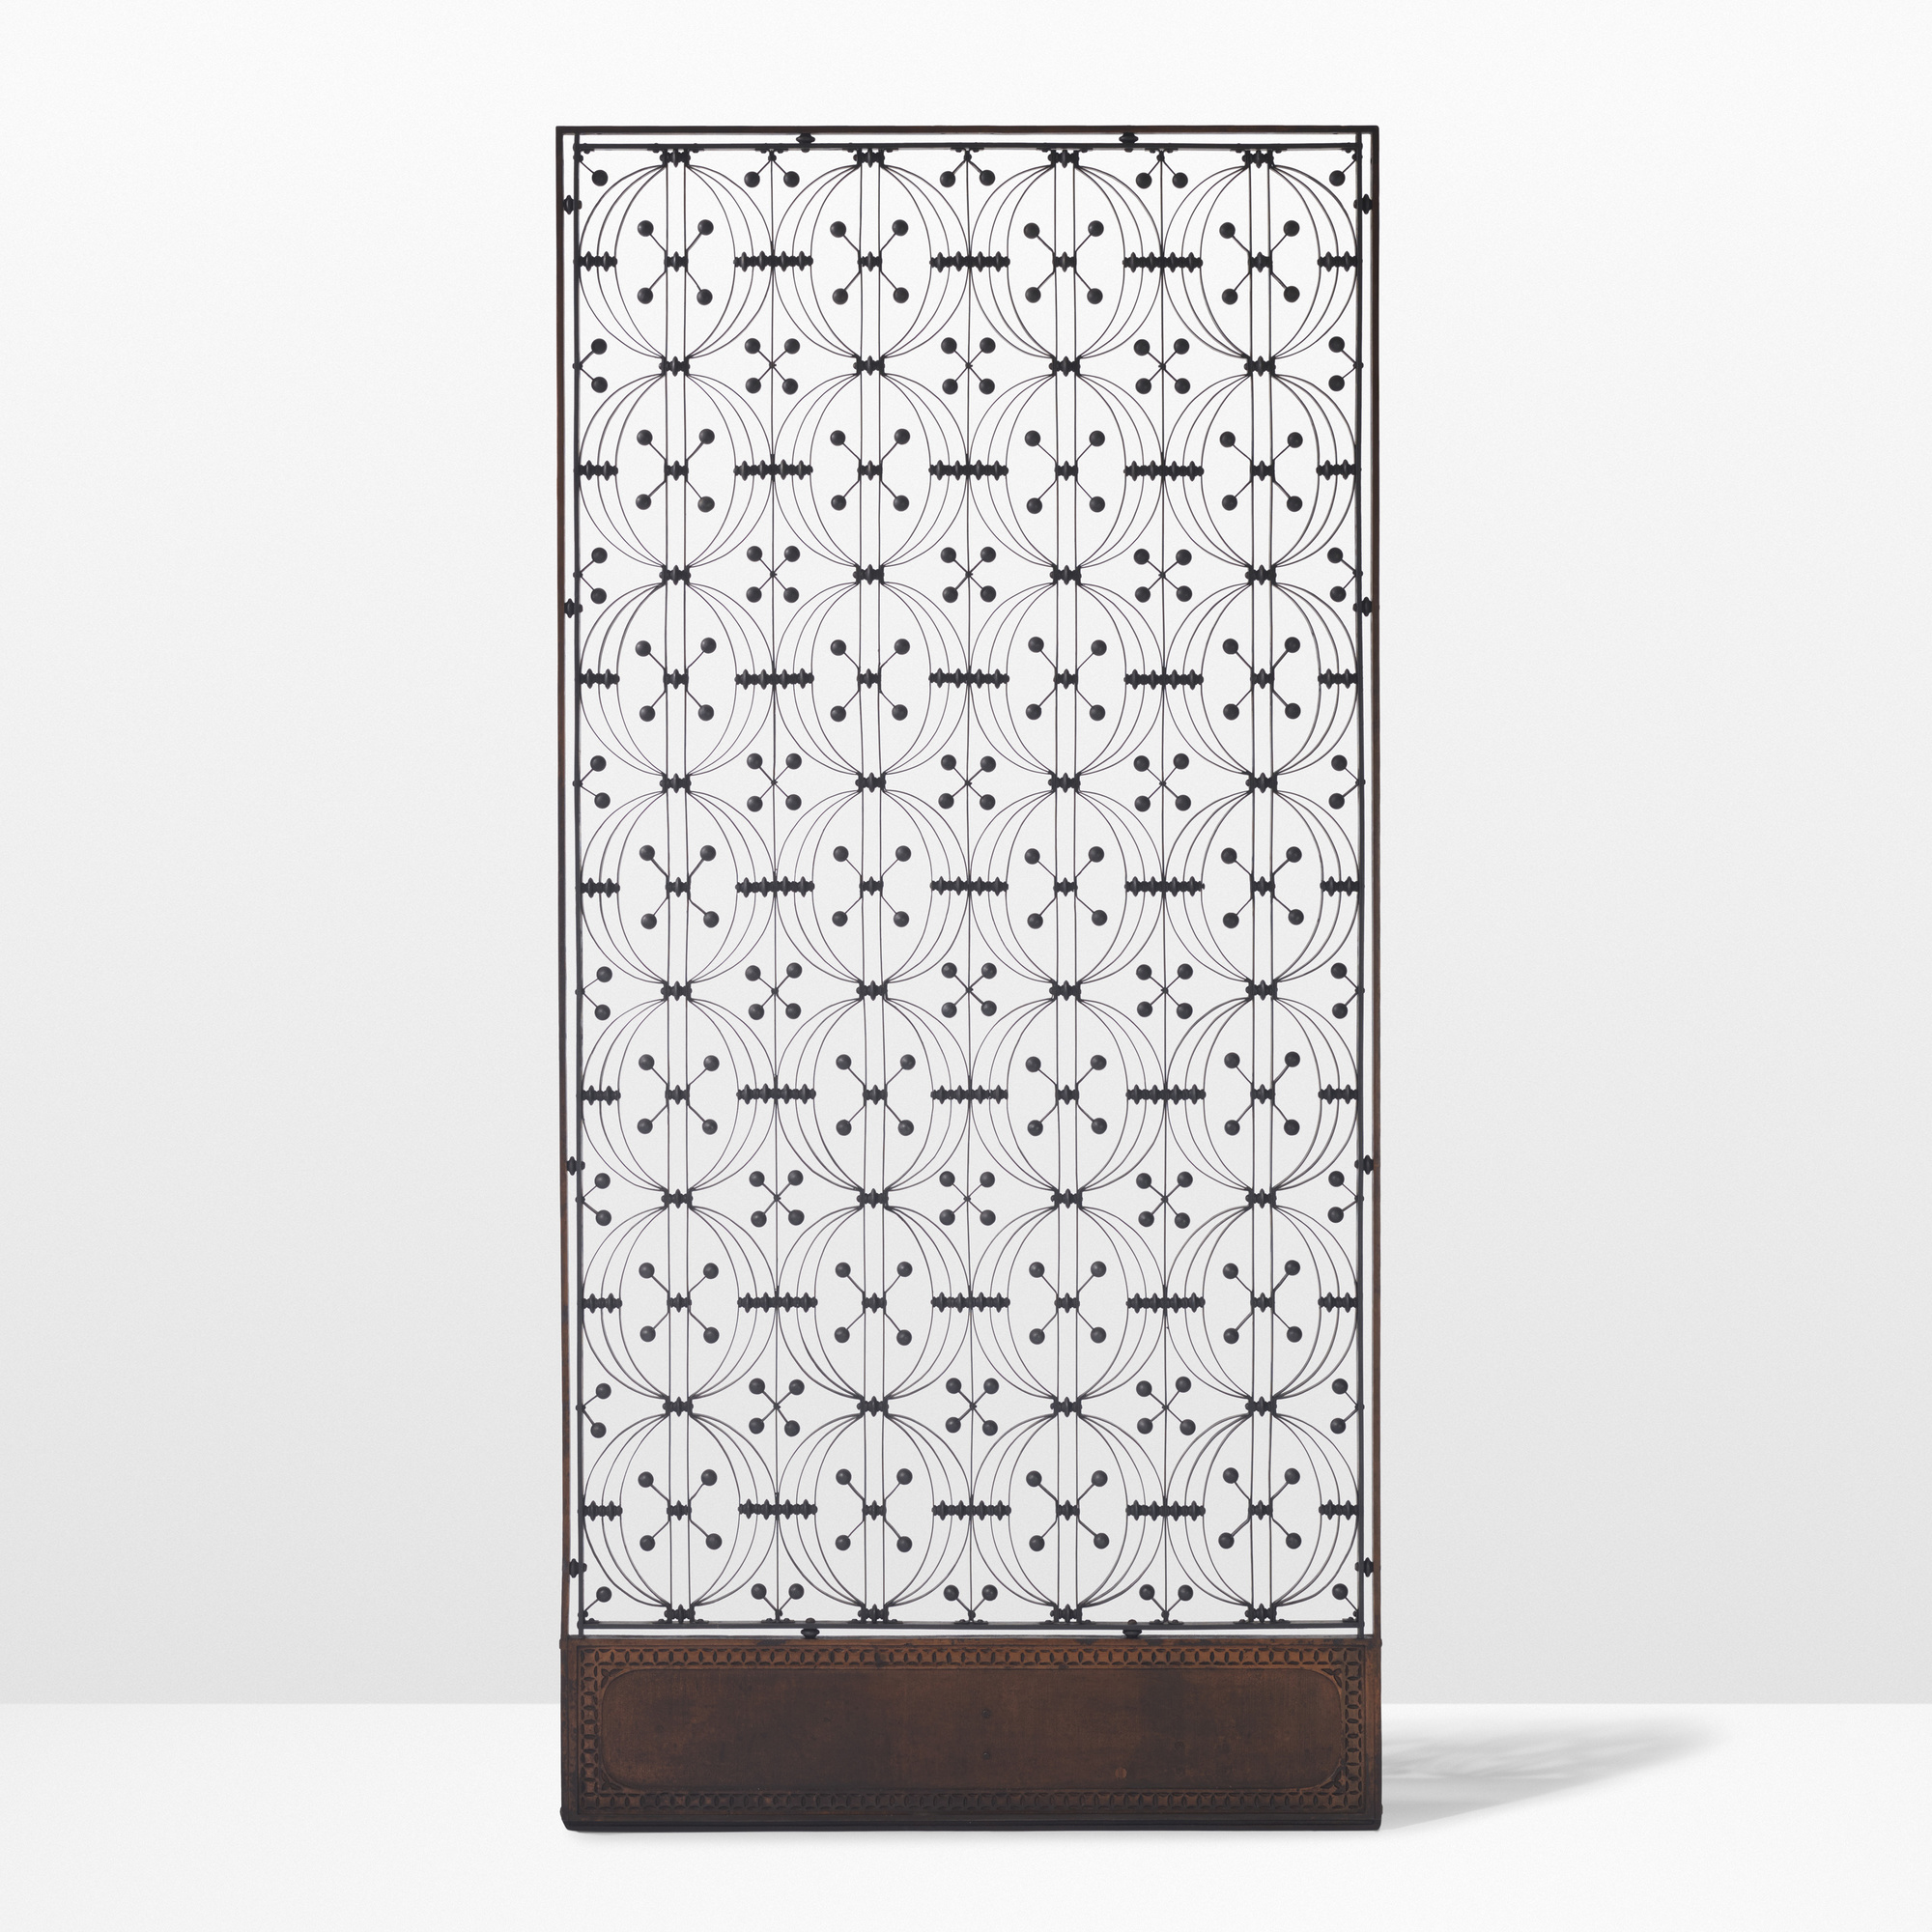 2: Dankmar Adler and Louis Sullivan / Elevator door from the Chicago Stock Exchange (1 of 3)